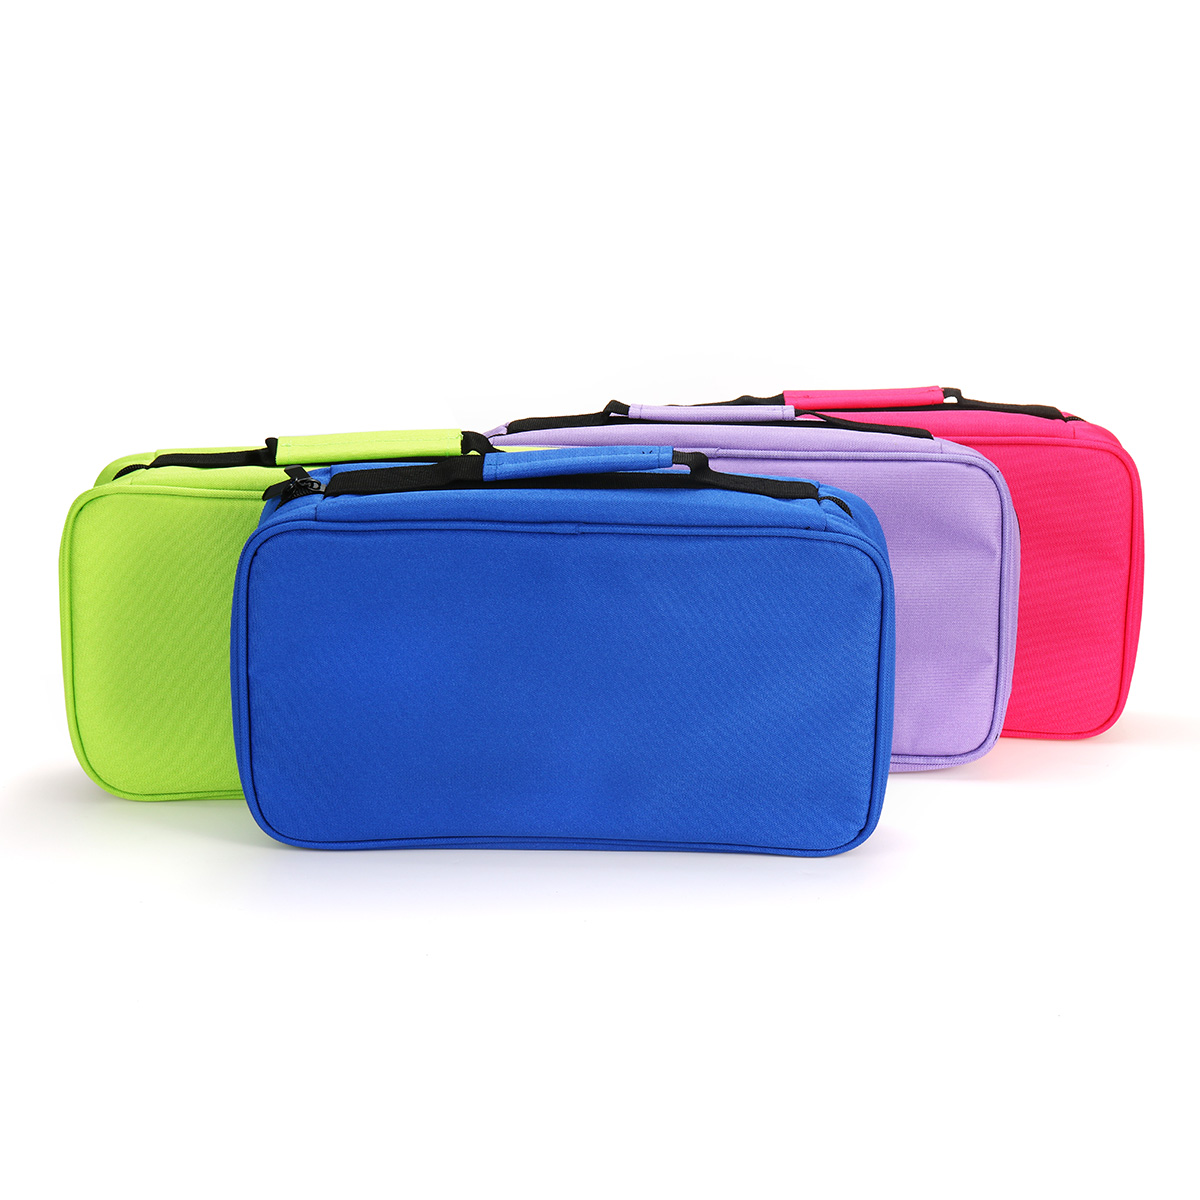 60 Colors Large Stationery Marker Pen Storage Bag Pencil Case Organizer Pouch Holder